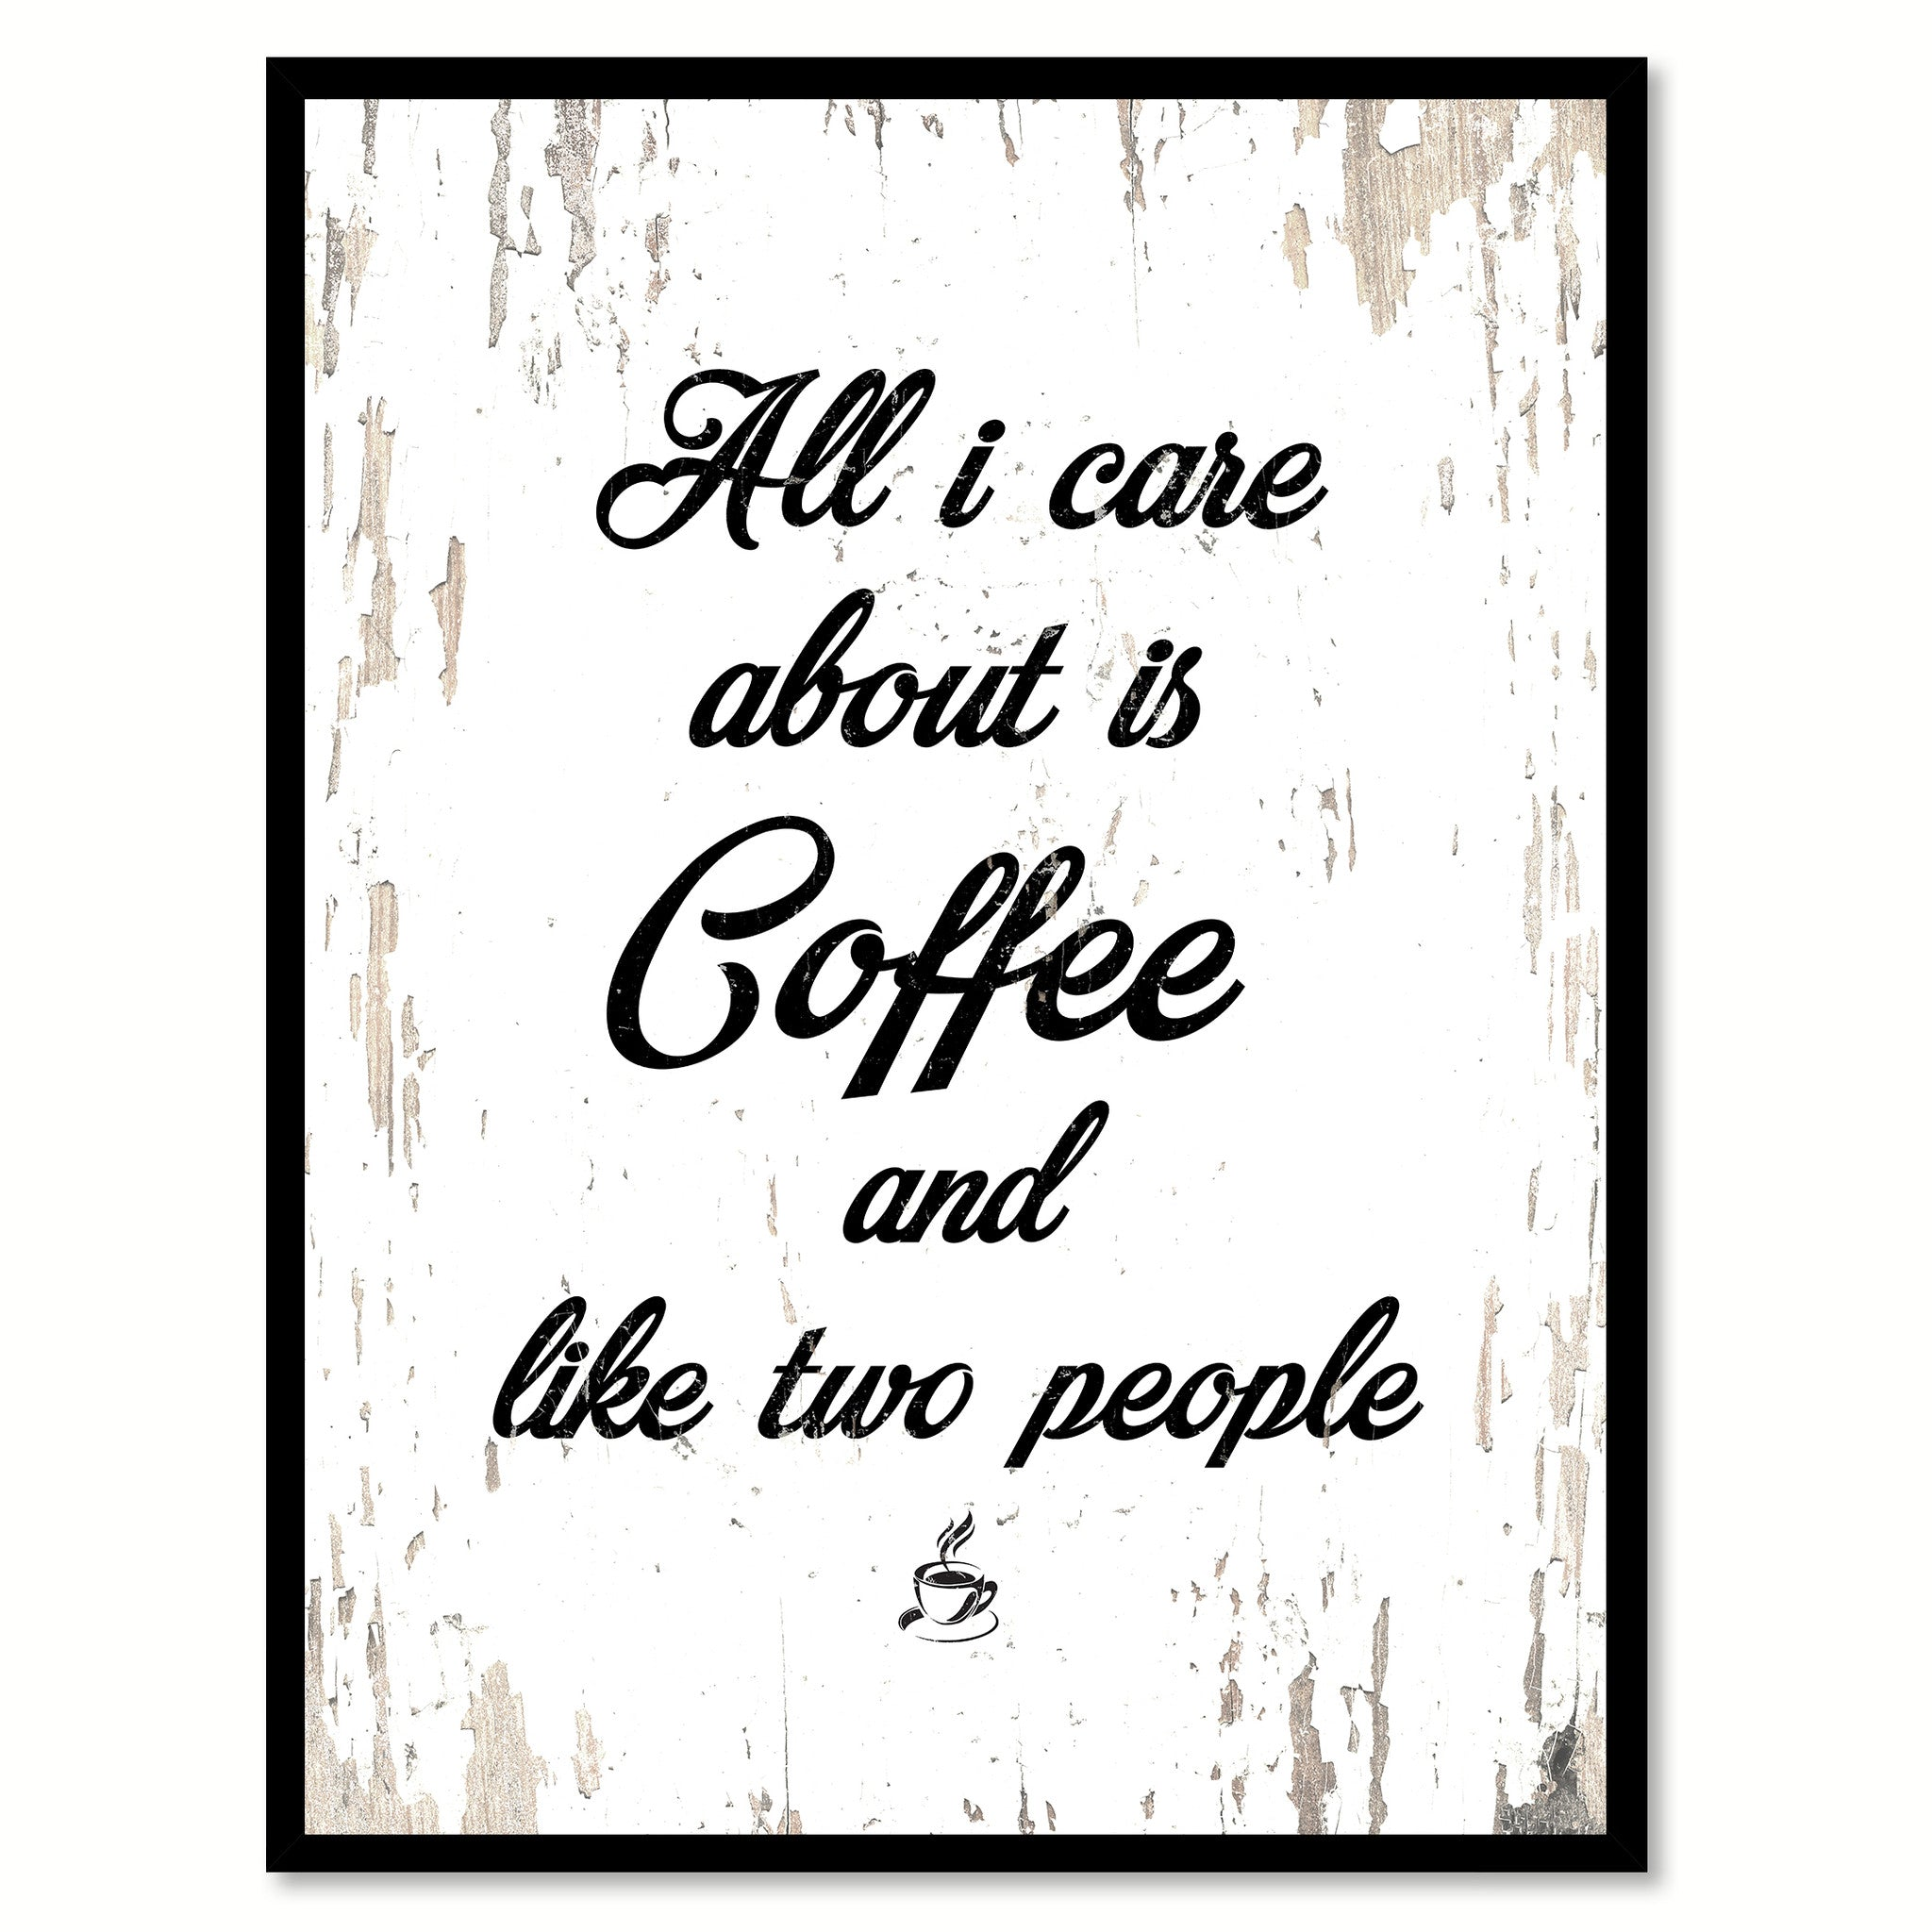 All i care about is coffee like two people coffee wine saying all i care about is coffee like two people quote saying canvas print with picture frame jeuxipadfo Gallery